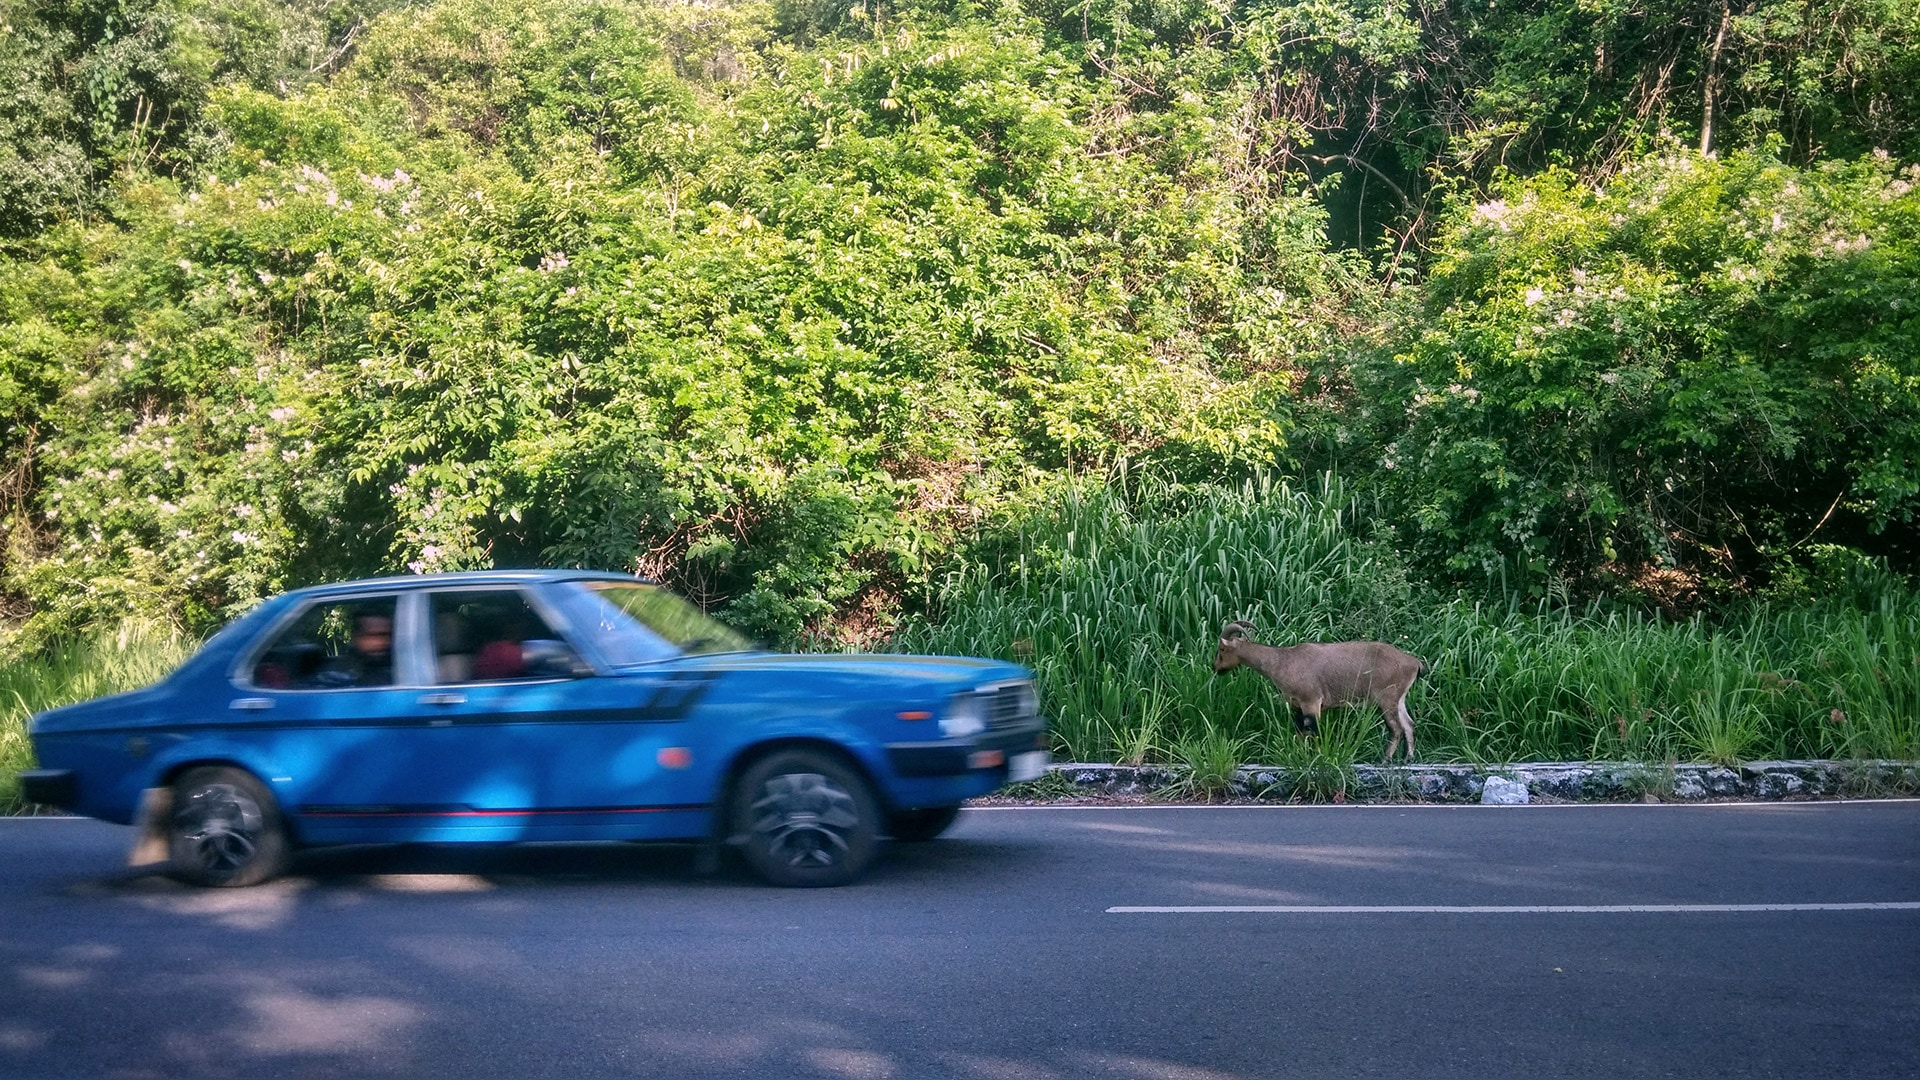 In Valparai, tahrs have become habituated to human presence largely due to feeding by people. Not only does this lead to health problems for Nilgiri tahrs, but can also lead to incidents of roadkill.  Photo: Vijay Karthick CC BY-SA 4.0